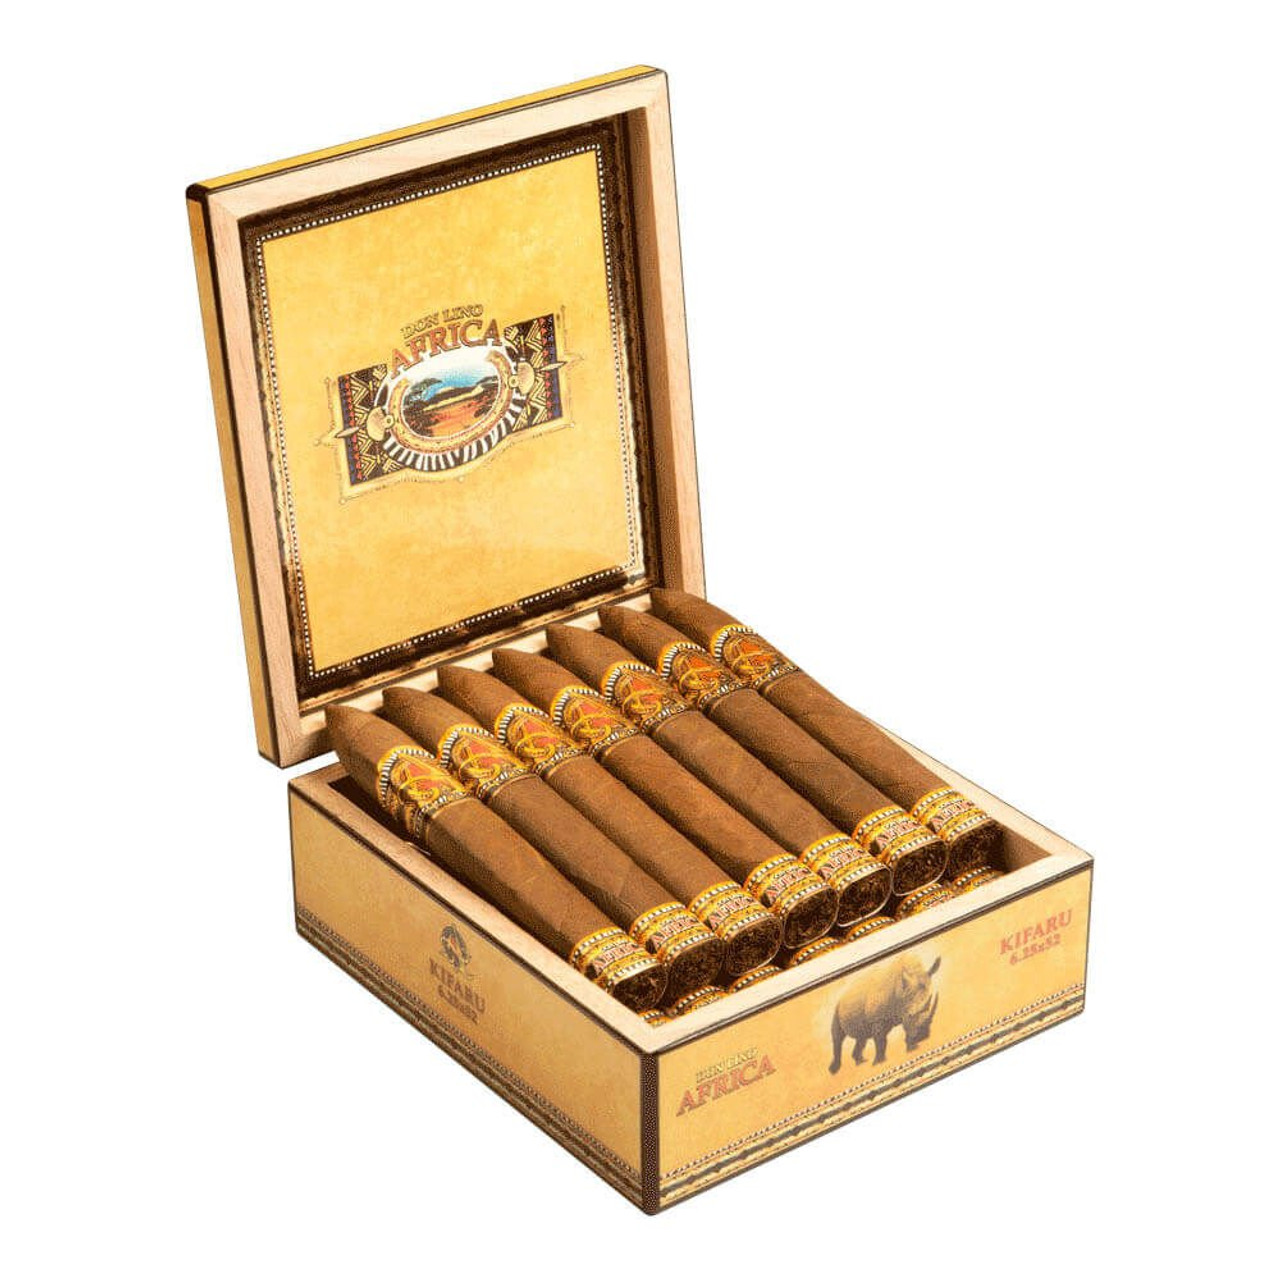 Don Lino Africa Gran Toro Tembo Cigars - 6.0 x 60 (Box of 20)